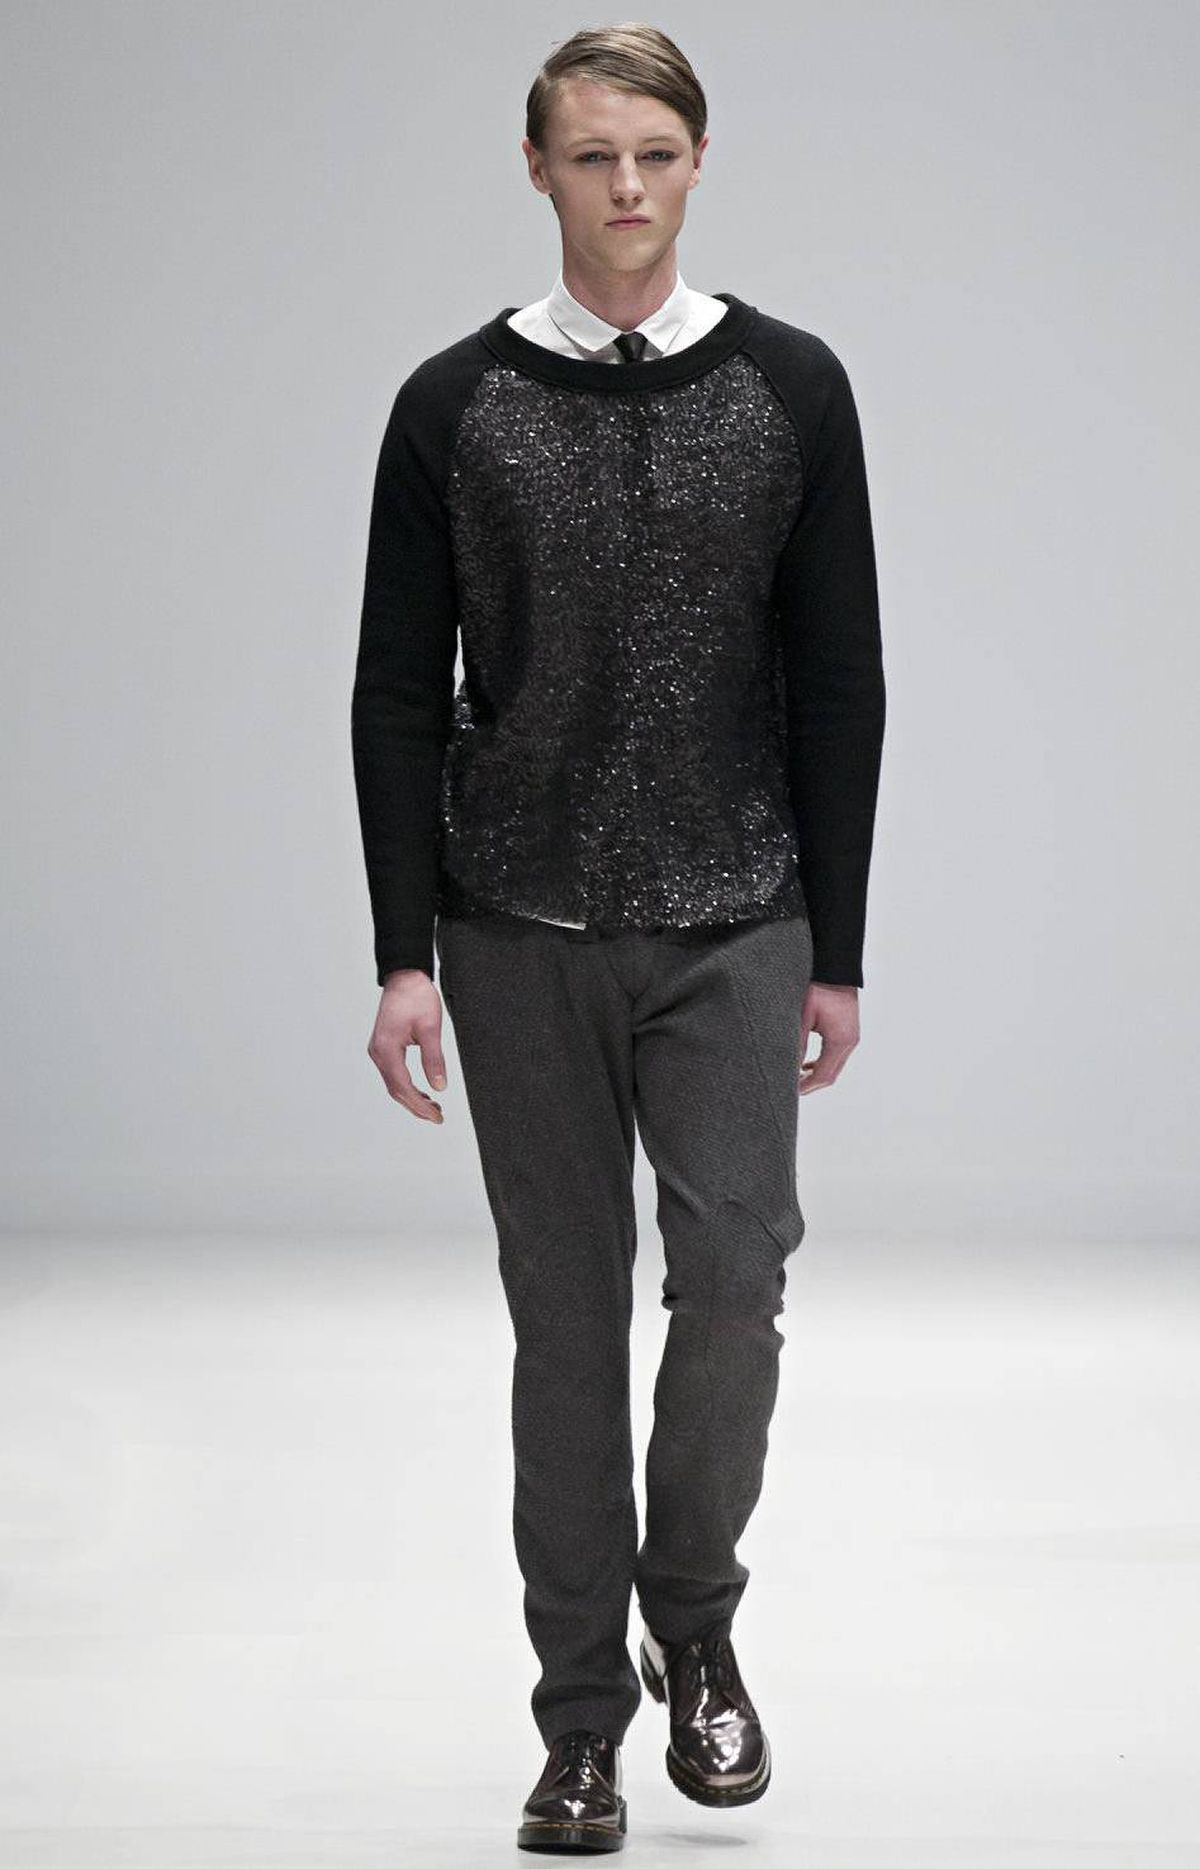 The label paid tribute to its Eve's rib philosophy: The line started out after the success of the women's wear. Naturally, it's okay to borrow from the ladies. Sequins, which appeared on casual tops, managed to look masculine and completely wearable.